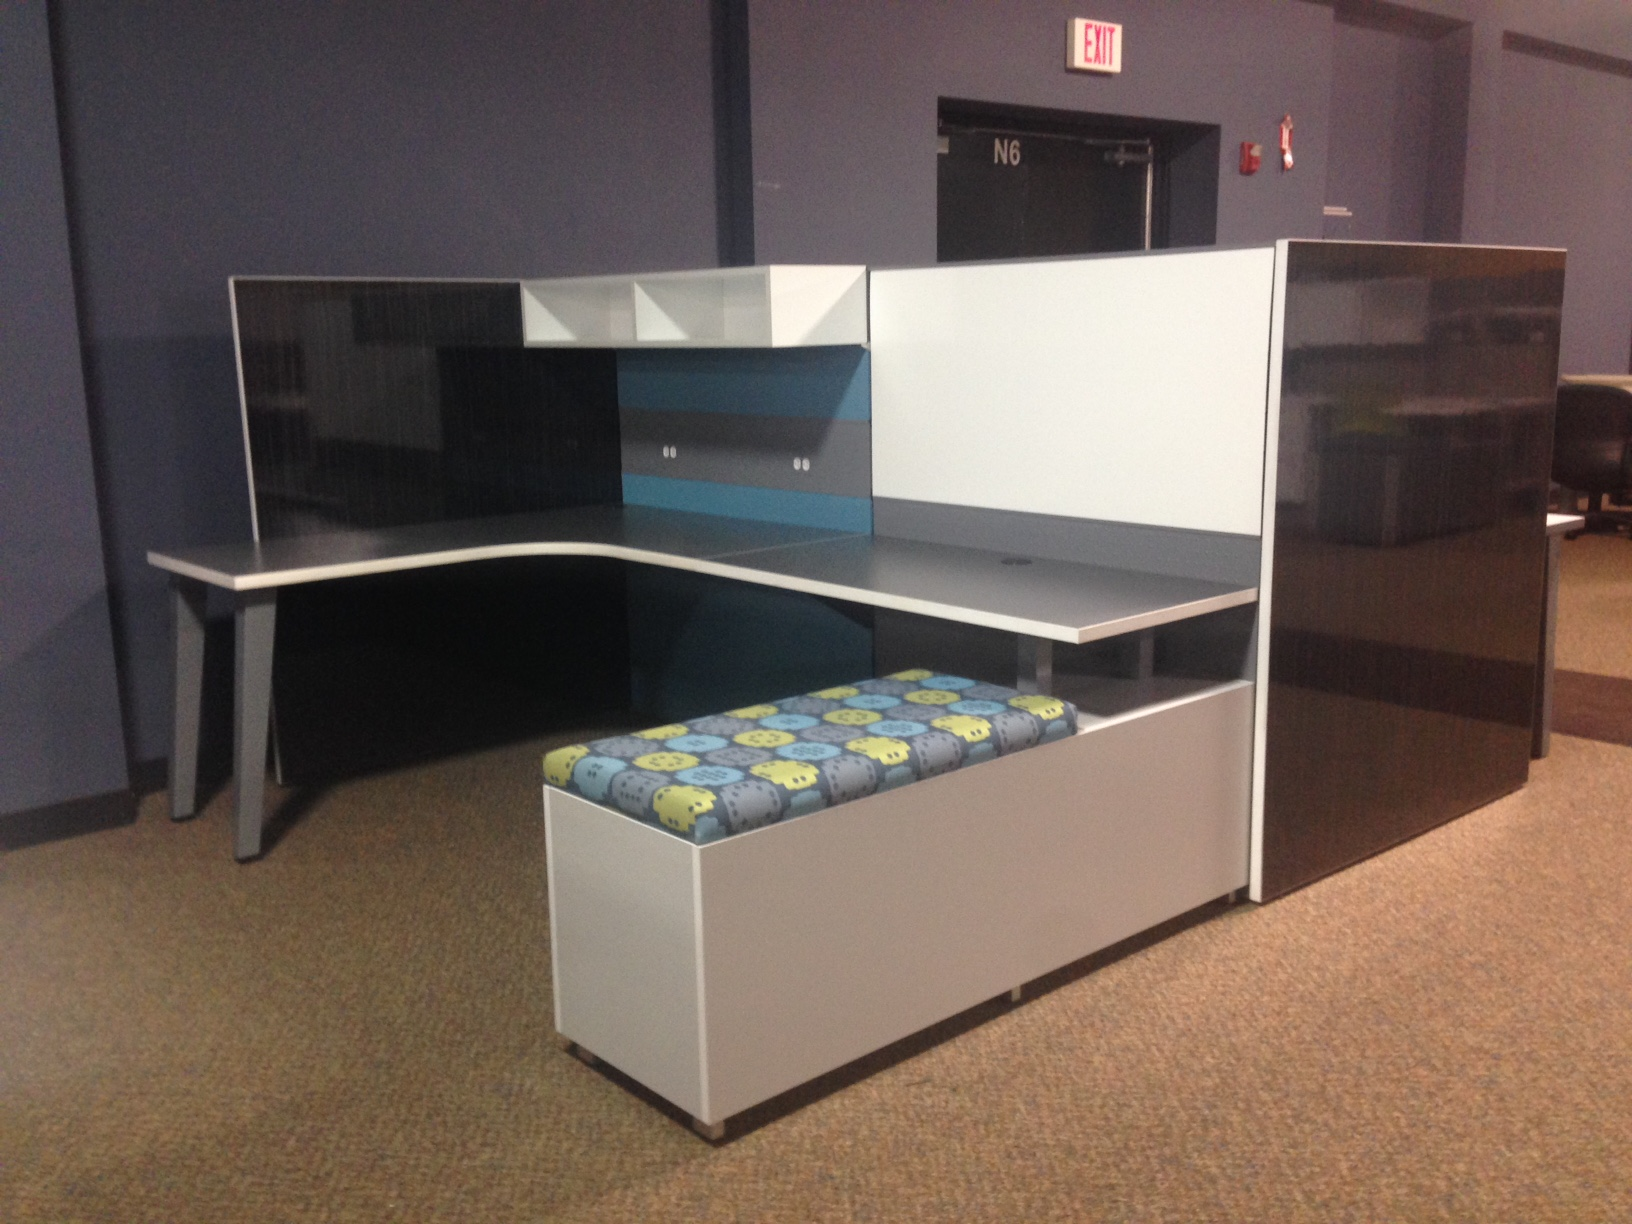 Office furniture chicago affordable office interiors Affordable office interiors madison wi